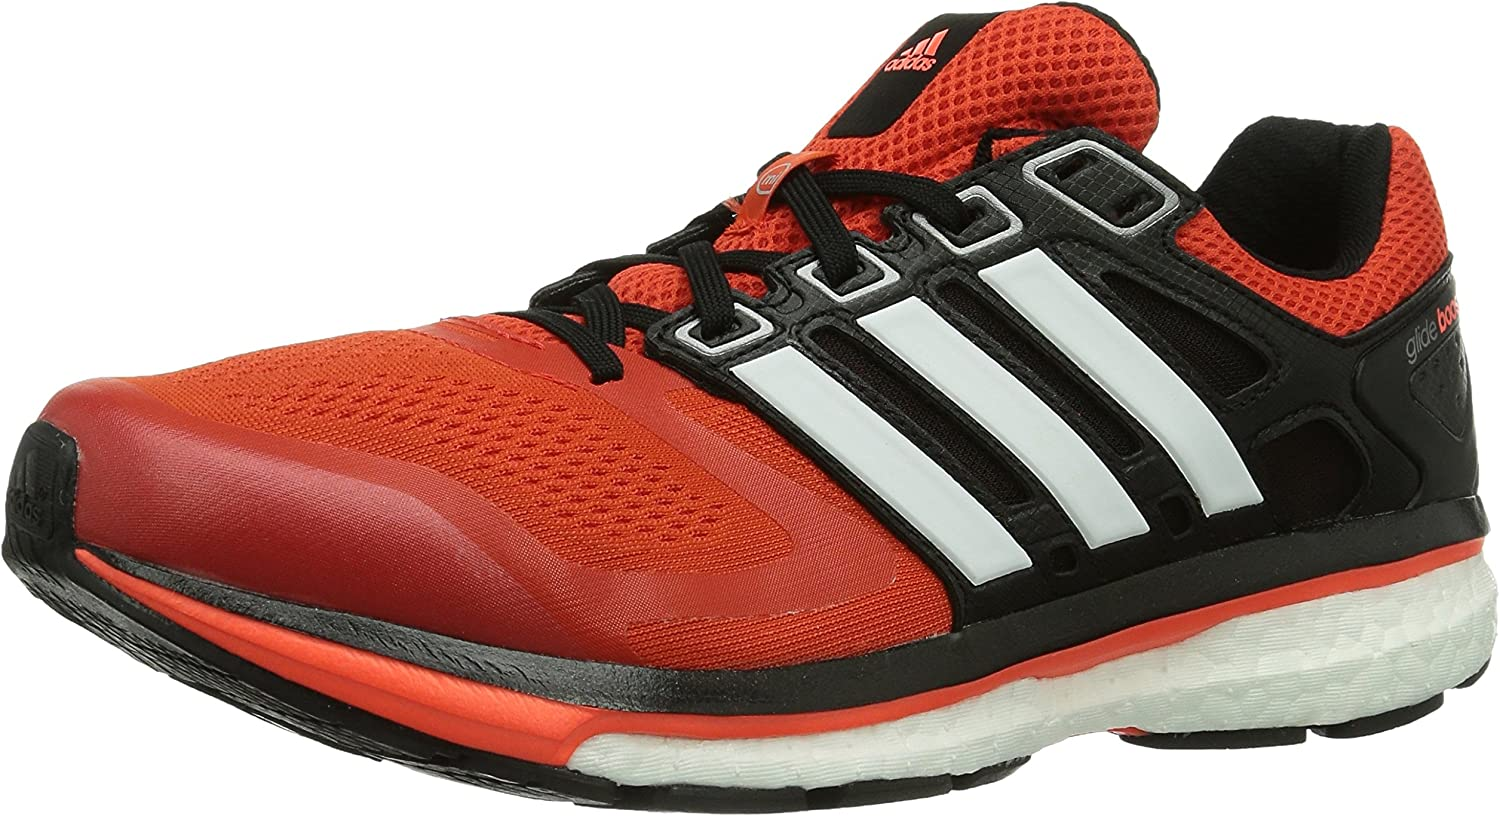 Profesor de escuela Campo Encadenar  Adidas - Supernova Glide 6 M - M17426 - Color: White - Size: 14.0:  Amazon.ca: Shoes & Handbags